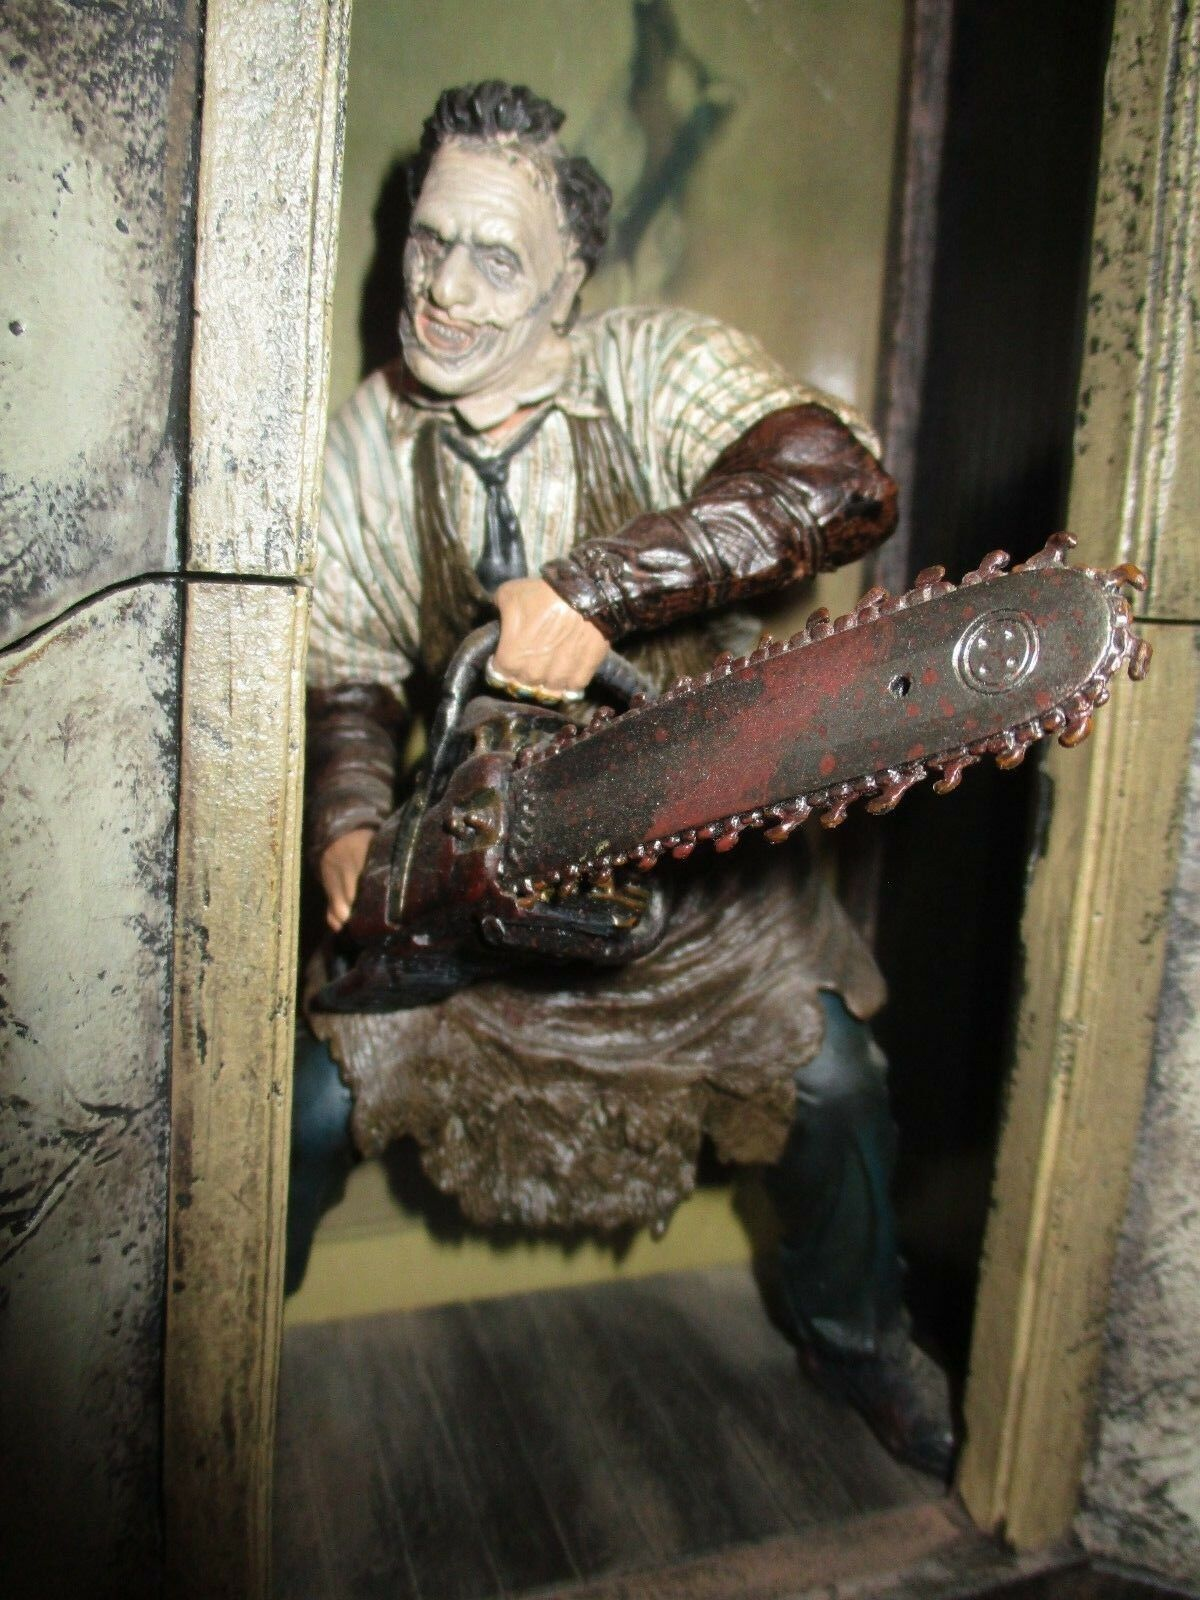 Old scenary removable massacre at chainsaw, Leatherface-Mc Farlane